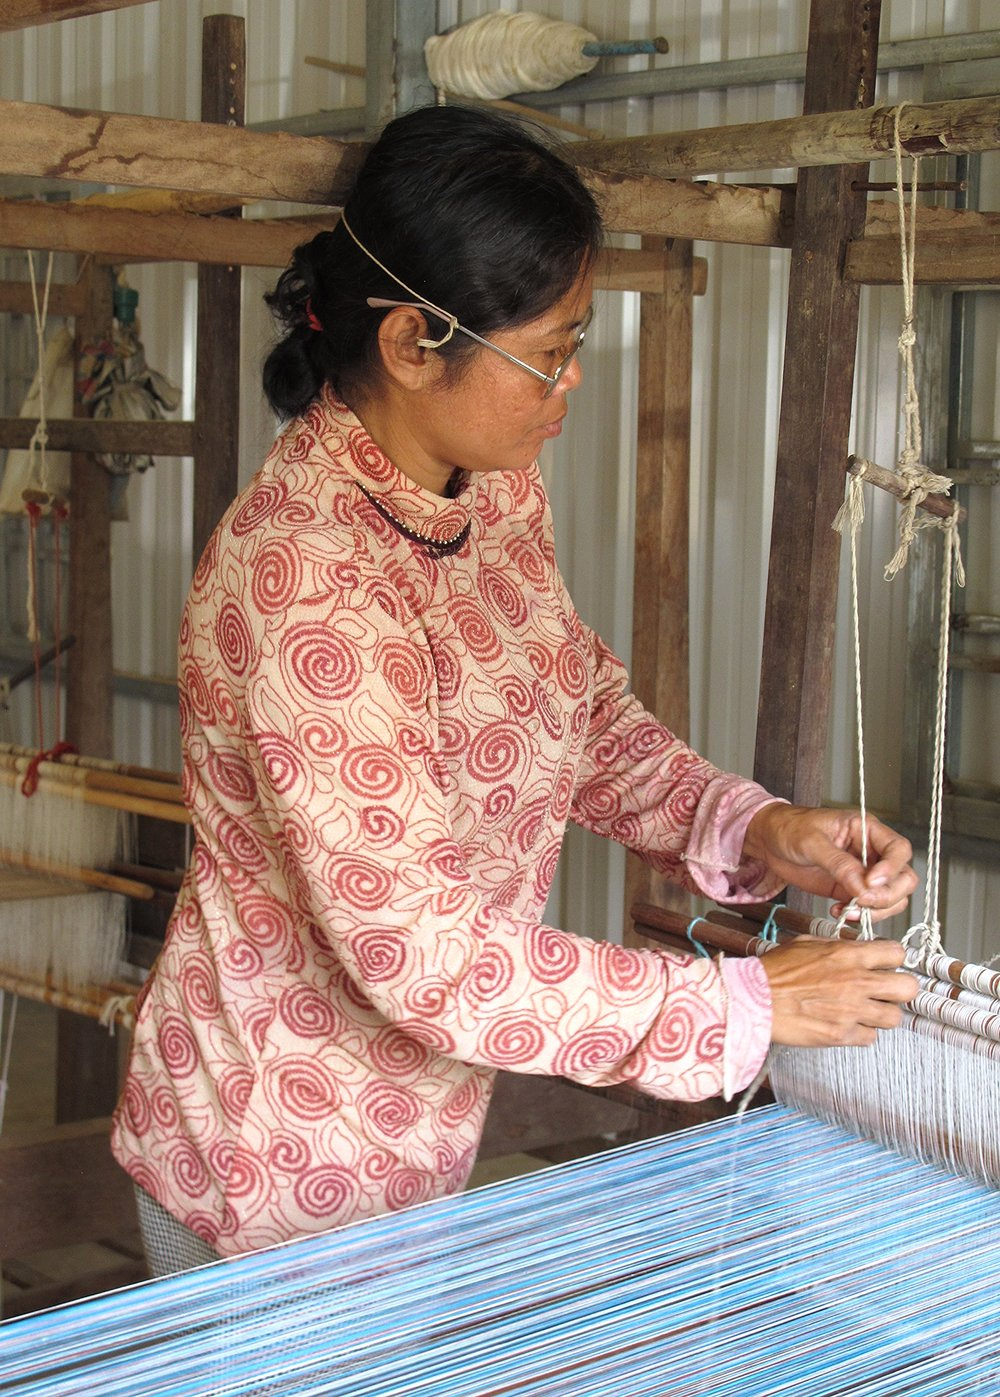 Adjusting the threads of her loom with an eye for perfection, the lead weaver at the Colors for Life workshop in Krang Phnong village, Cambodia